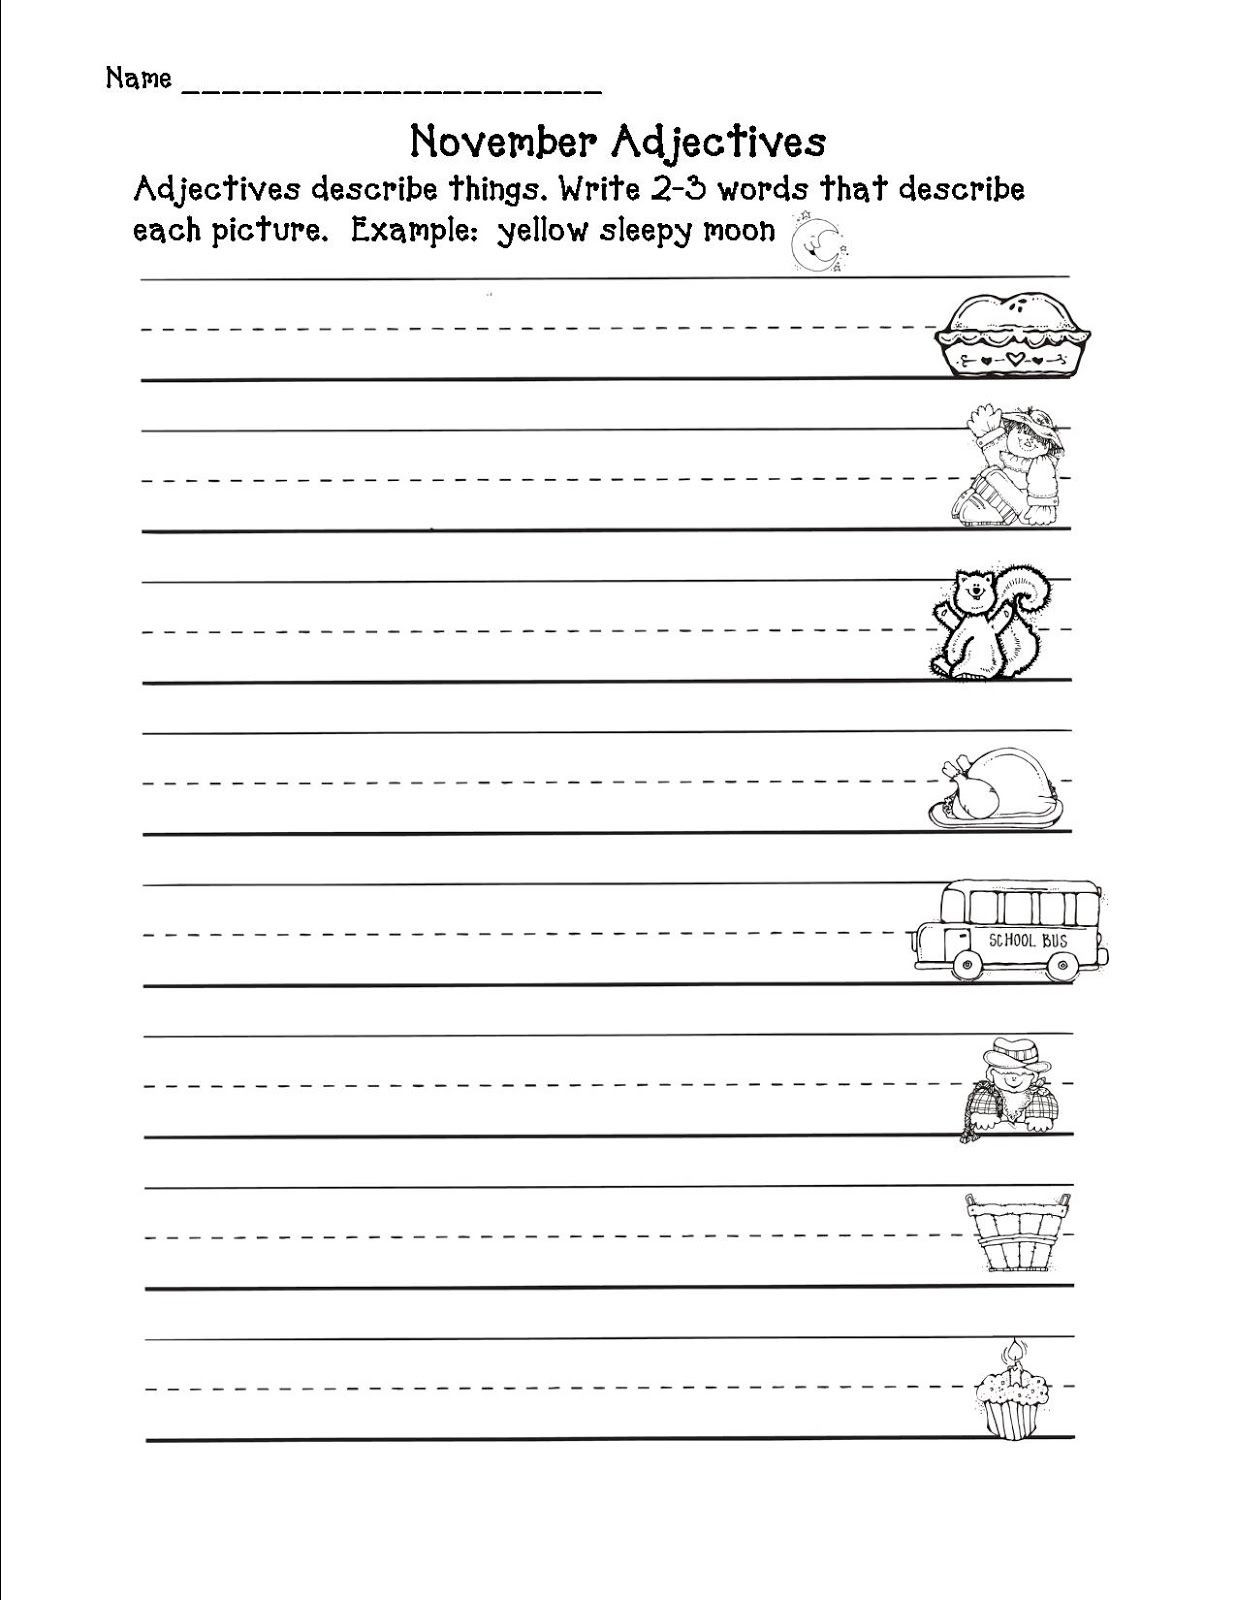 Adjectives Worksheet 2nd Grade November Adjectives Worksheet Second Grade Freebies